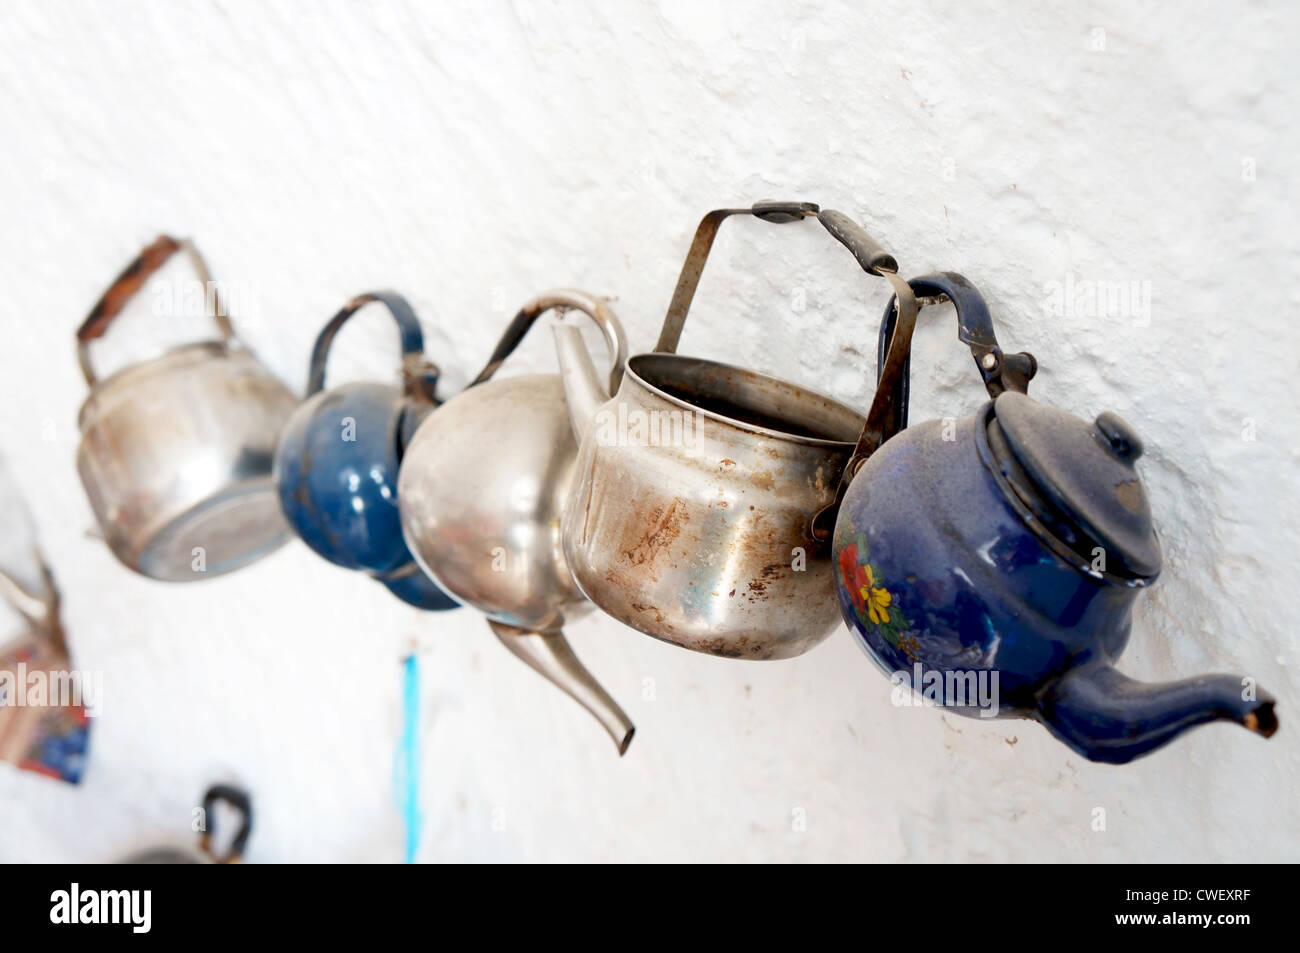 Old metallic teapots fixed hanging on a white wall - Stock Image